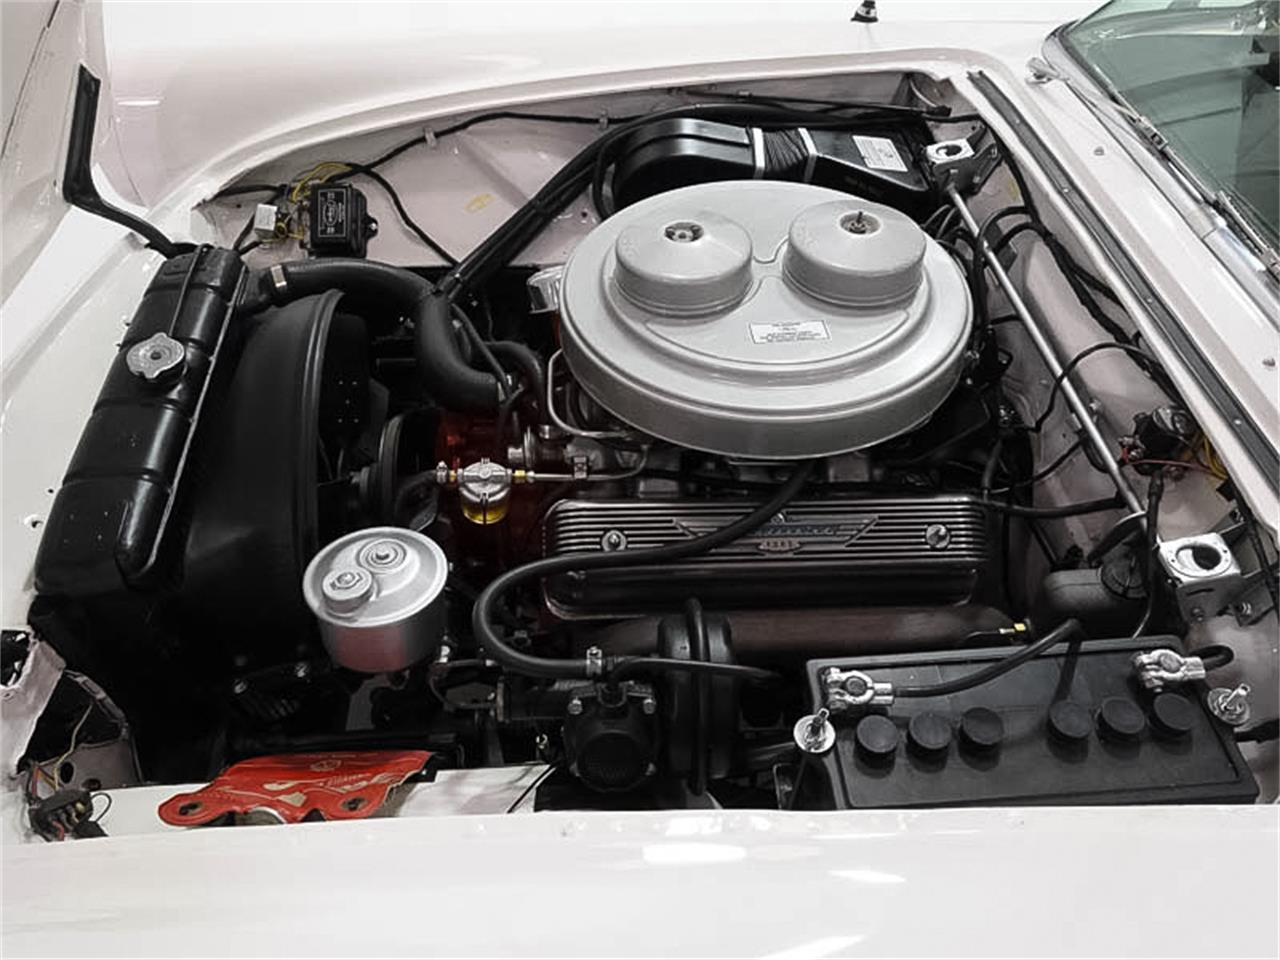 Large Picture of 1957 Ford Thunderbird located in St Ann Missouri - $59,900.00 Offered by Daniel Schmitt & Co. - EX4H